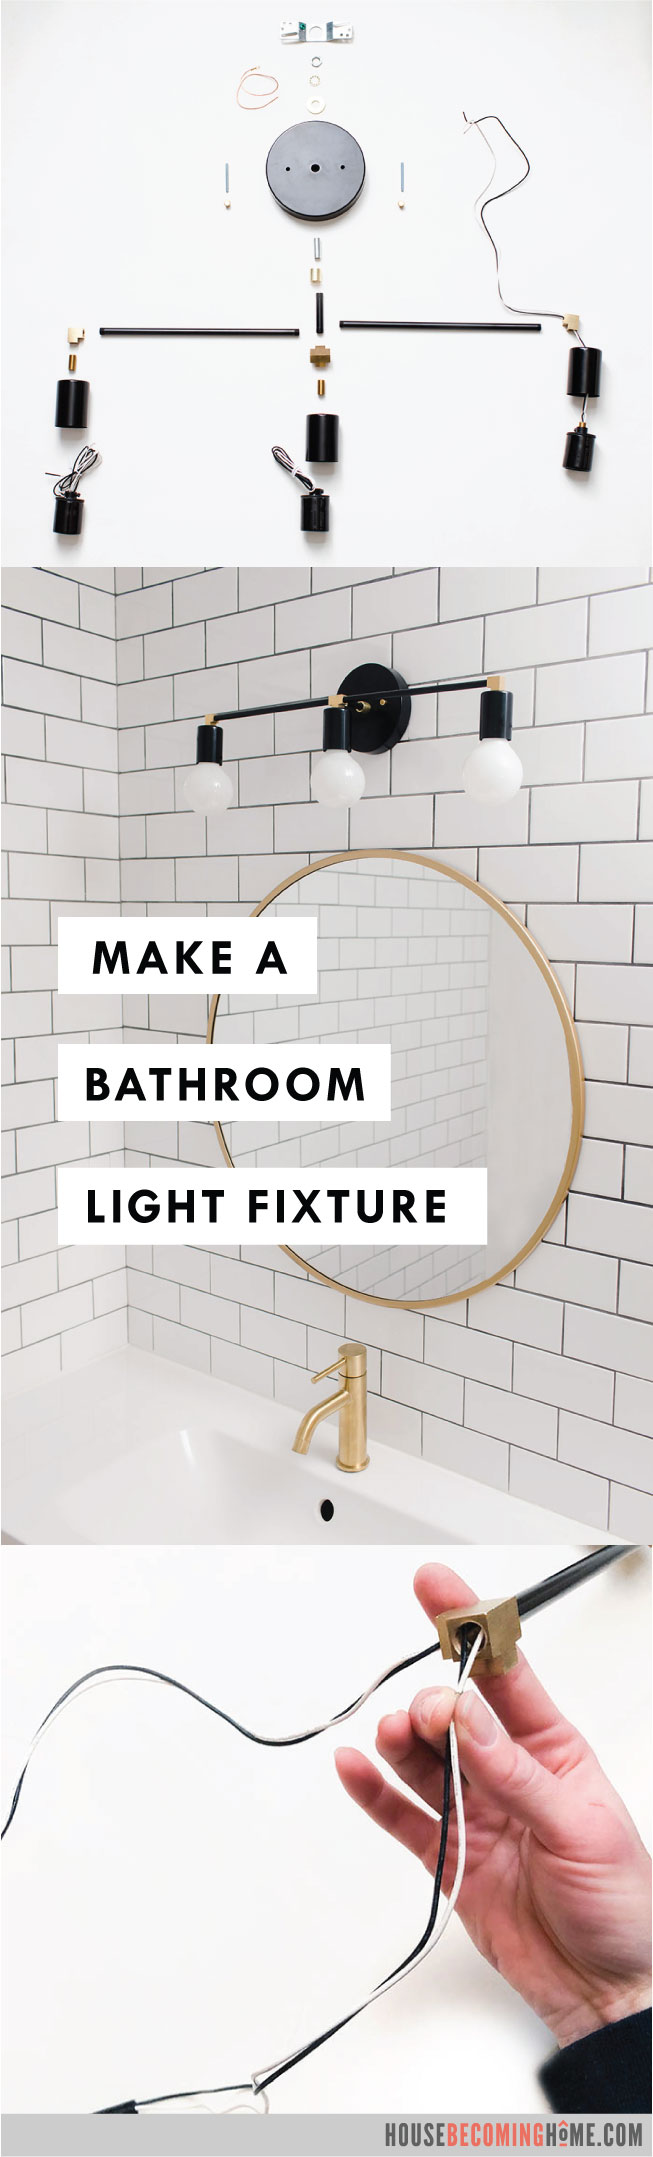 How to Make a Modern Black and Brass Bathroom Light Fixture : A step by step tutorial with a complete supply list.